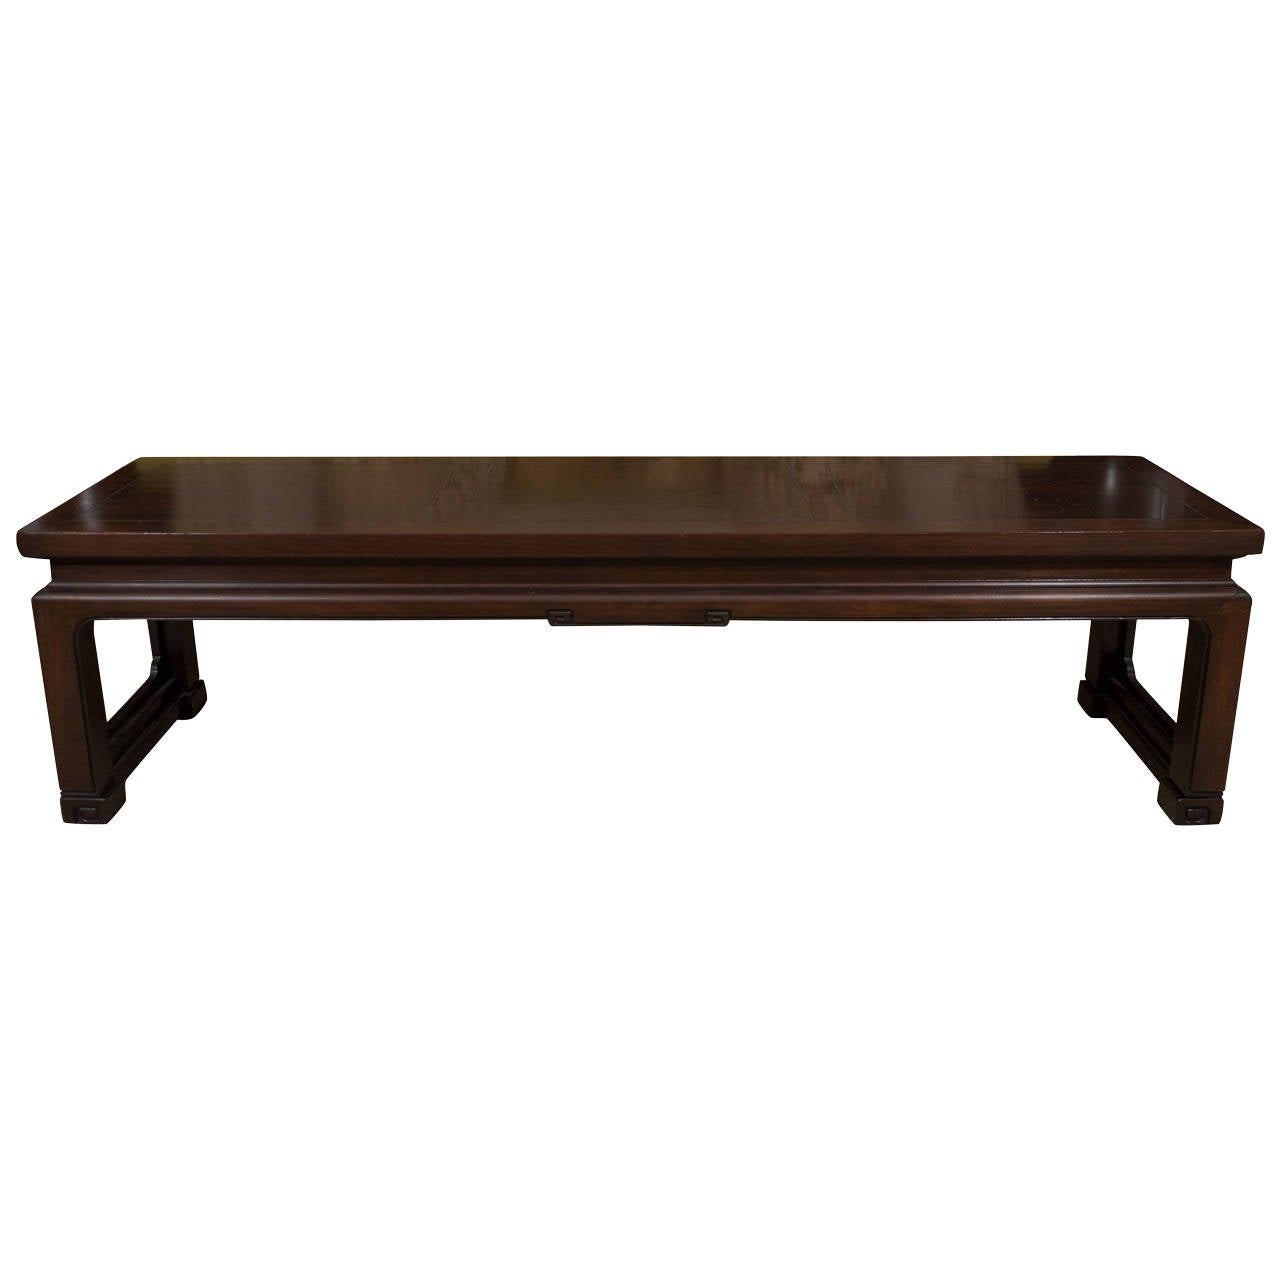 Vintage Baker Coffee Tables: Vintage Baker Asian Wood Coffee Table At 1stdibs